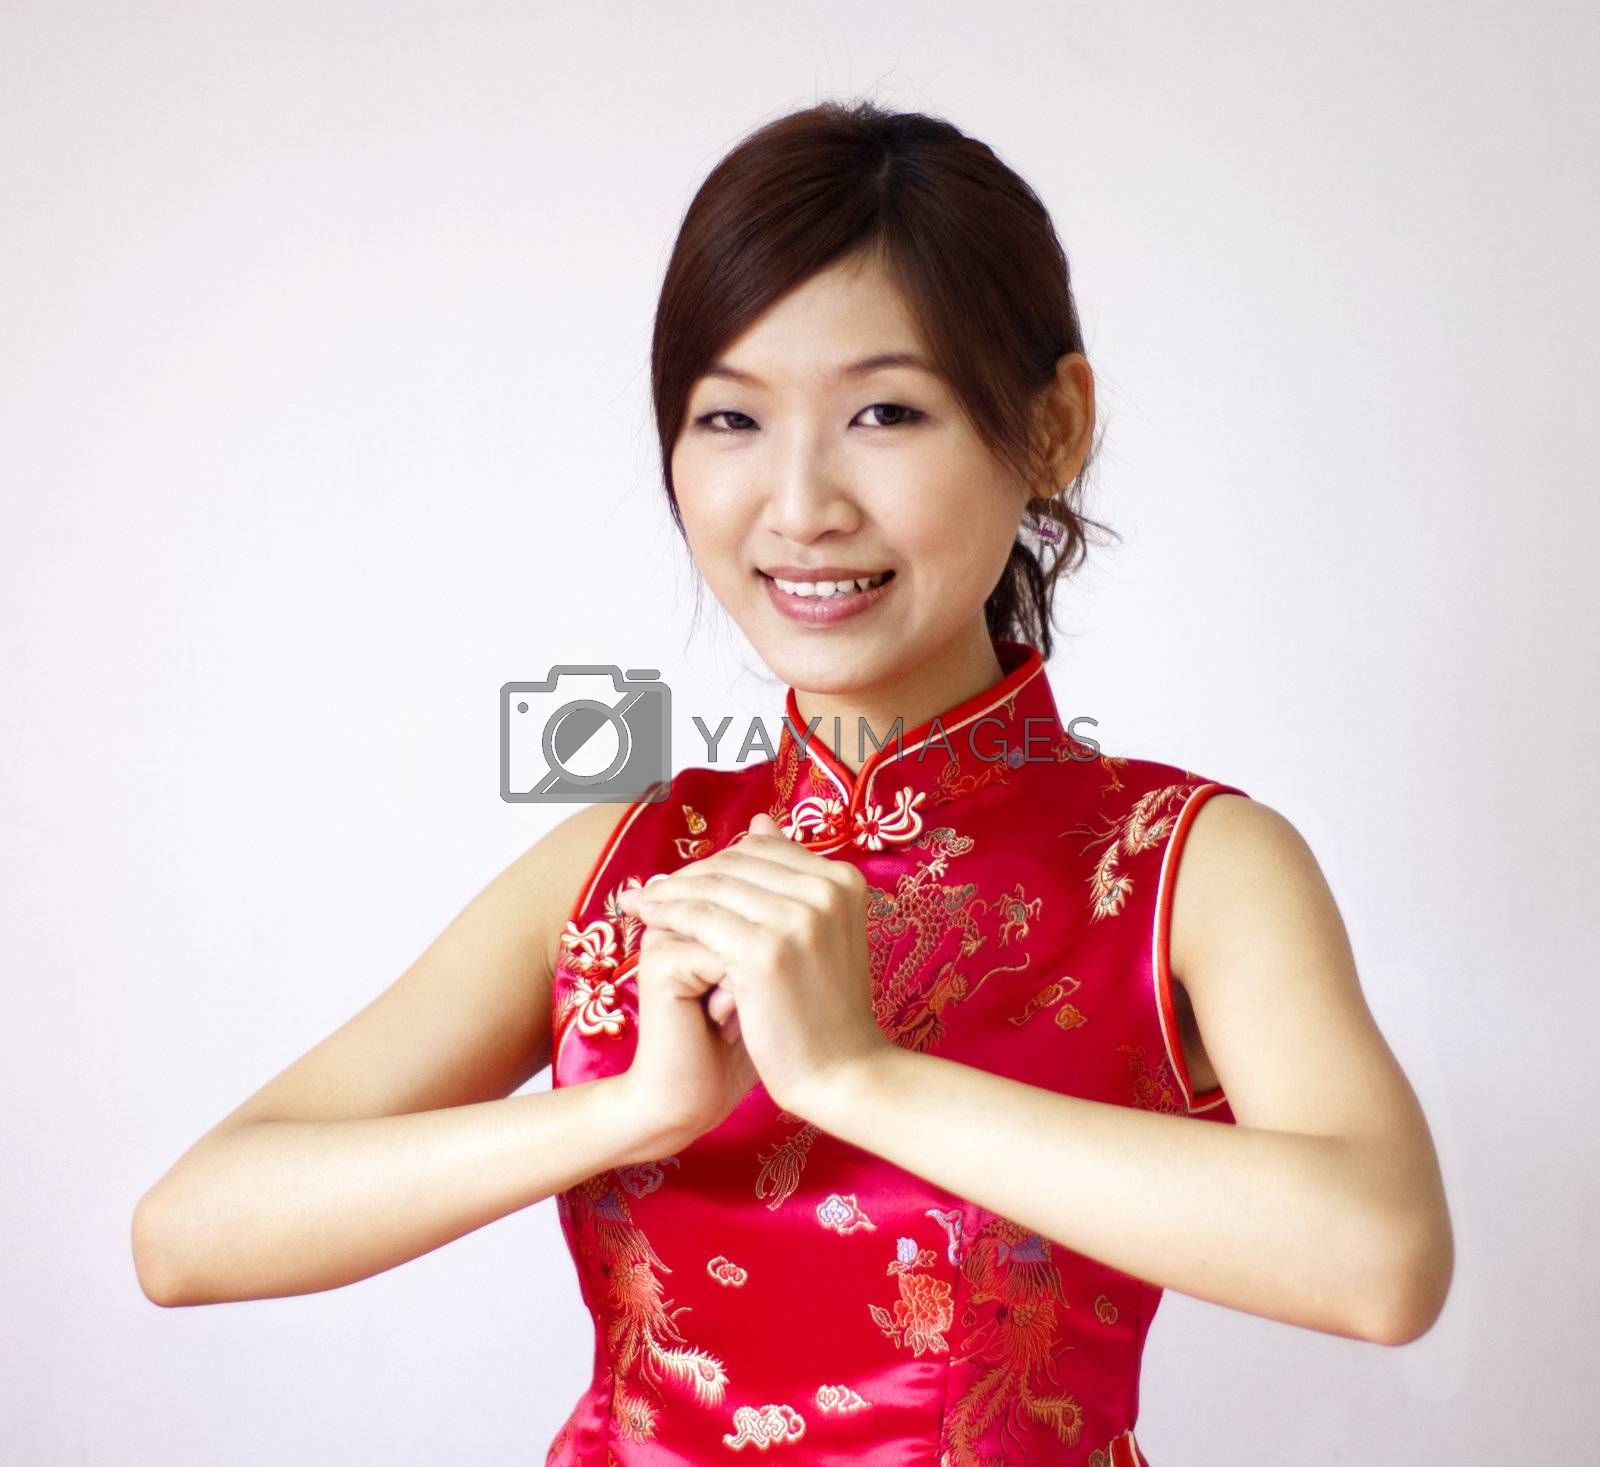 Oriental girl with traditional Cheongsam suit wishing you a happy Chinese New Year.